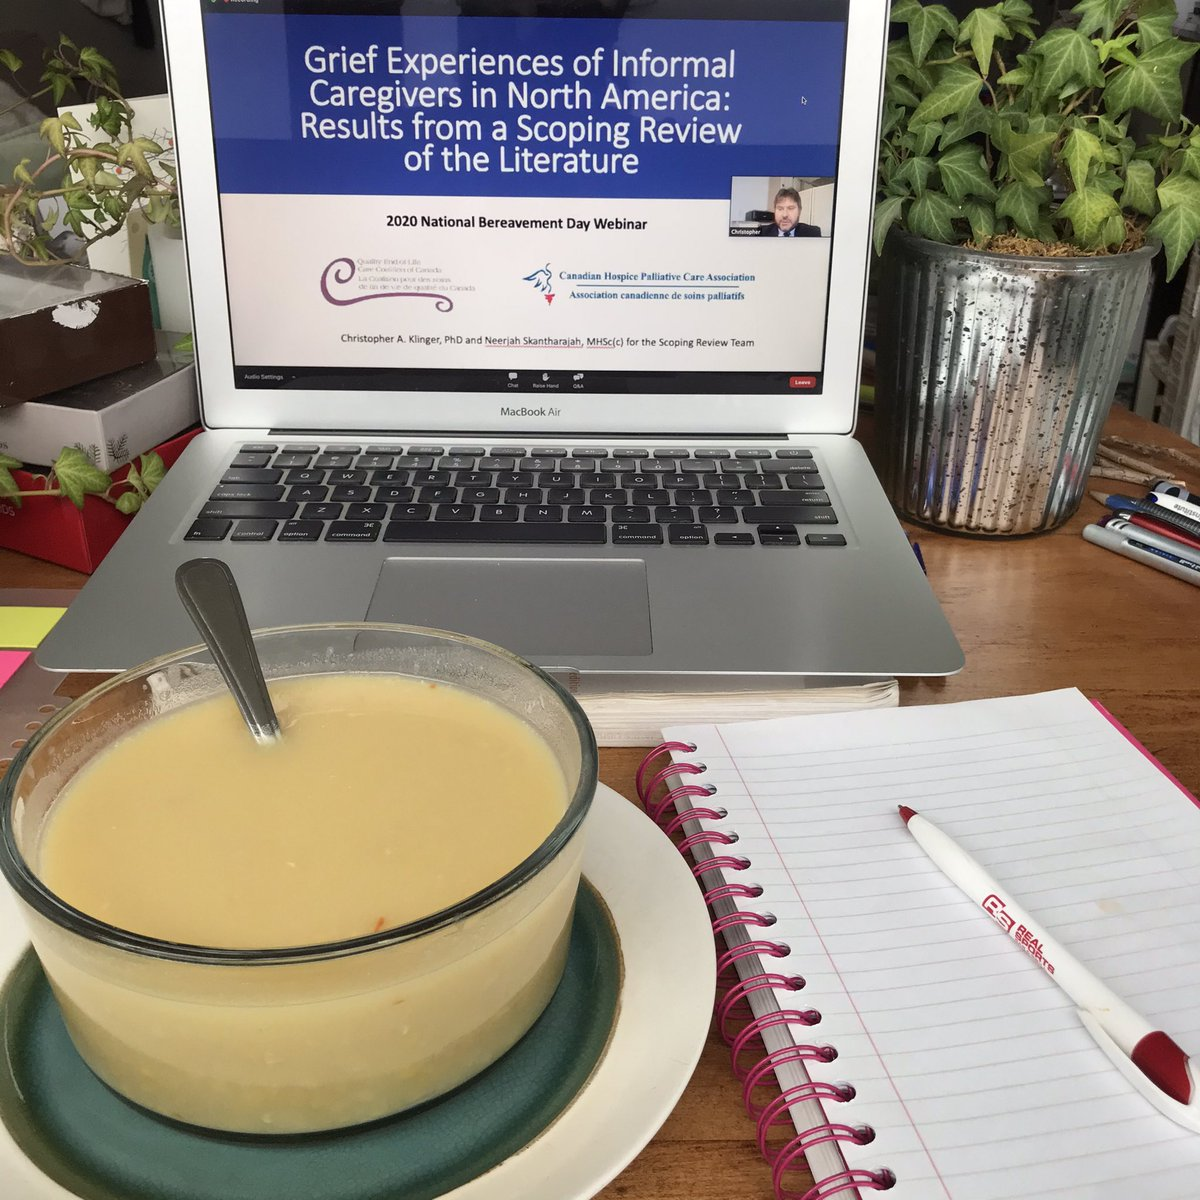 Today is #NationalDayOfMourning   Having pea soup for lunch whilst listening to today's presentation  Grief Experiences of Informed Caregivers in North America Results from a scoping review  QELCCC's Blueprint for Action:   #caregivers #grief #bereavement